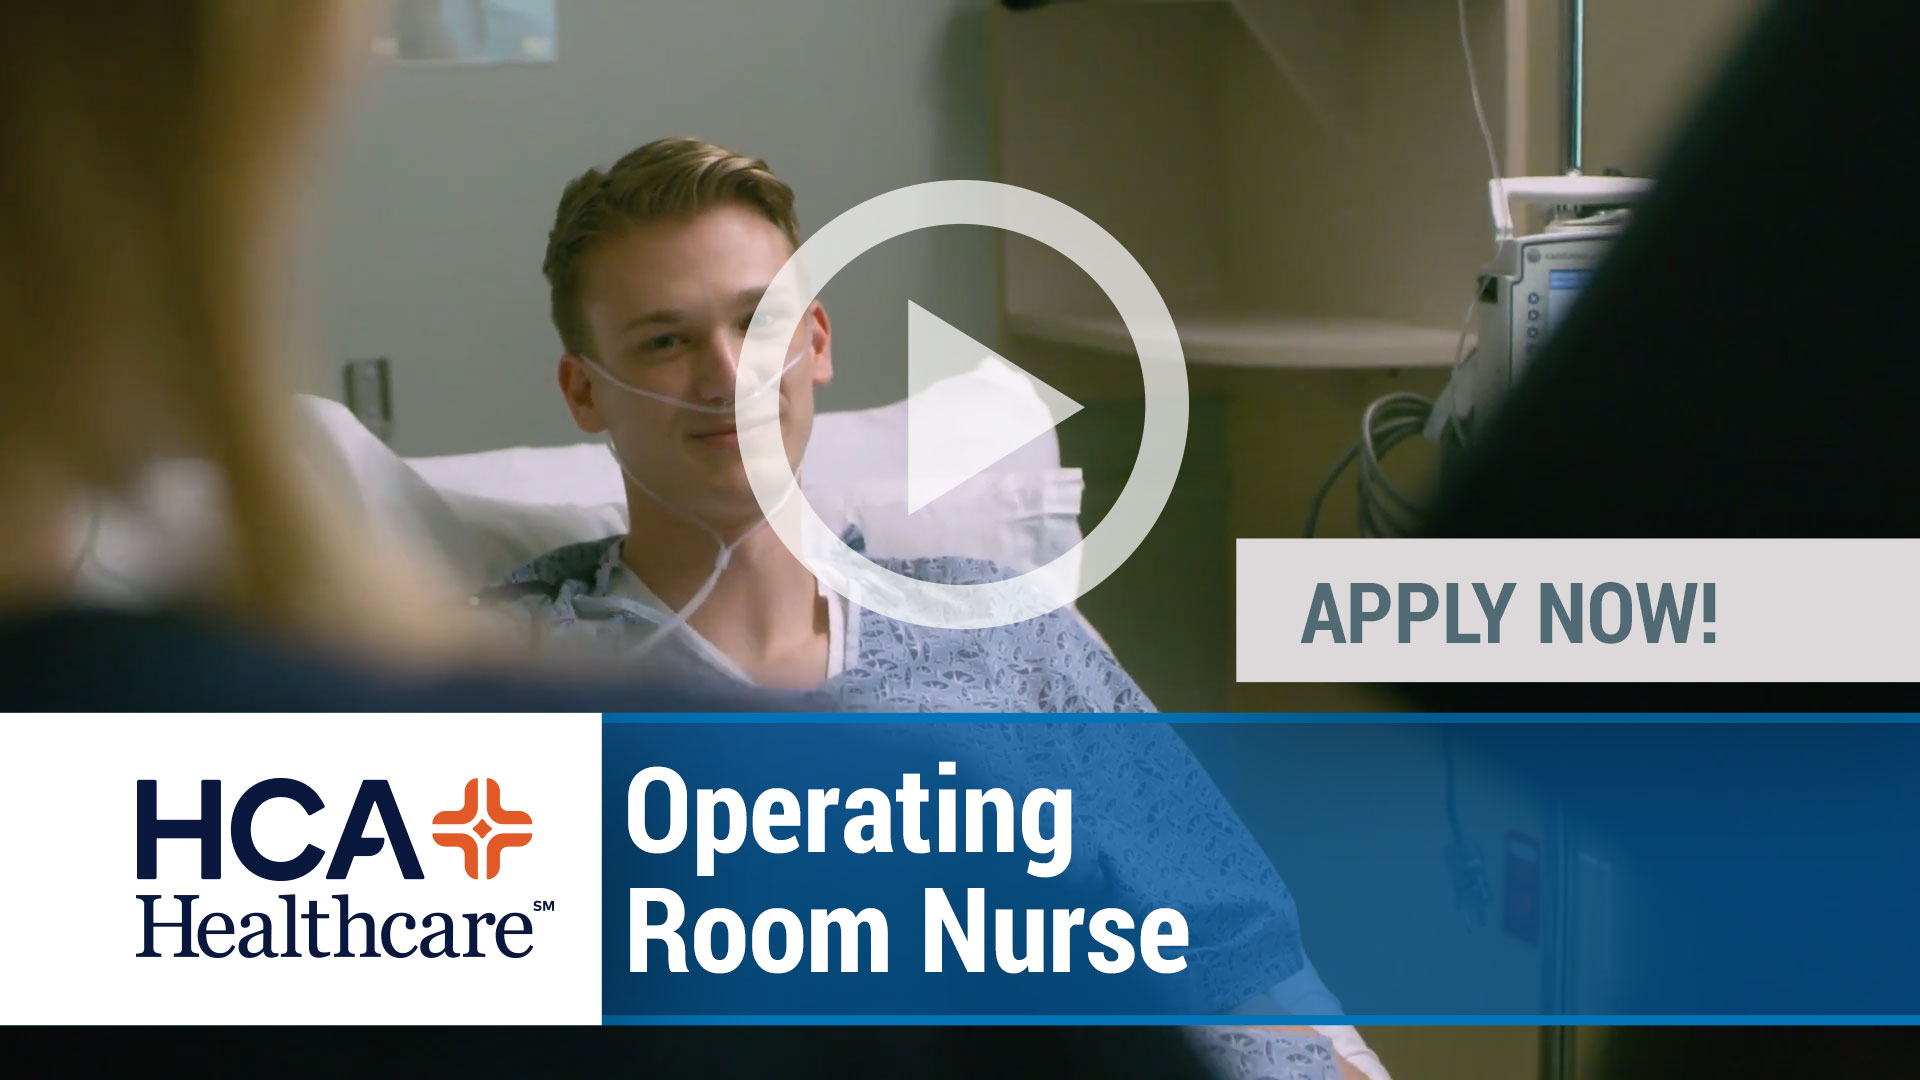 Watch our careers video for available job opening Operating Room Nurse in Las Vegas, Nevada